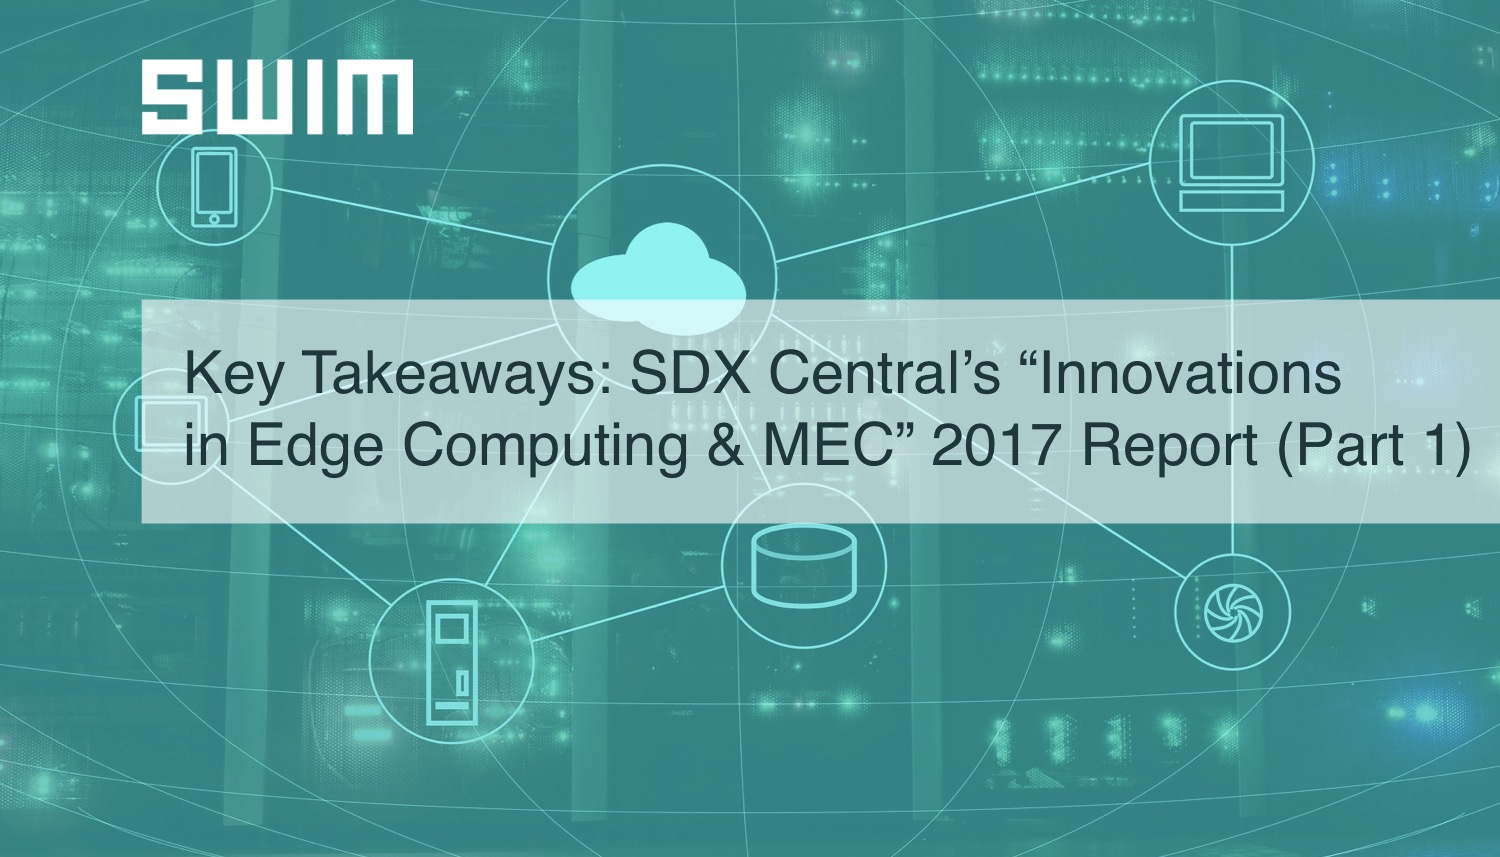 """Key Takeaways From SDX Central's 2017 """"Innovations in Edge Computing and MEC"""" Report (Part I) 